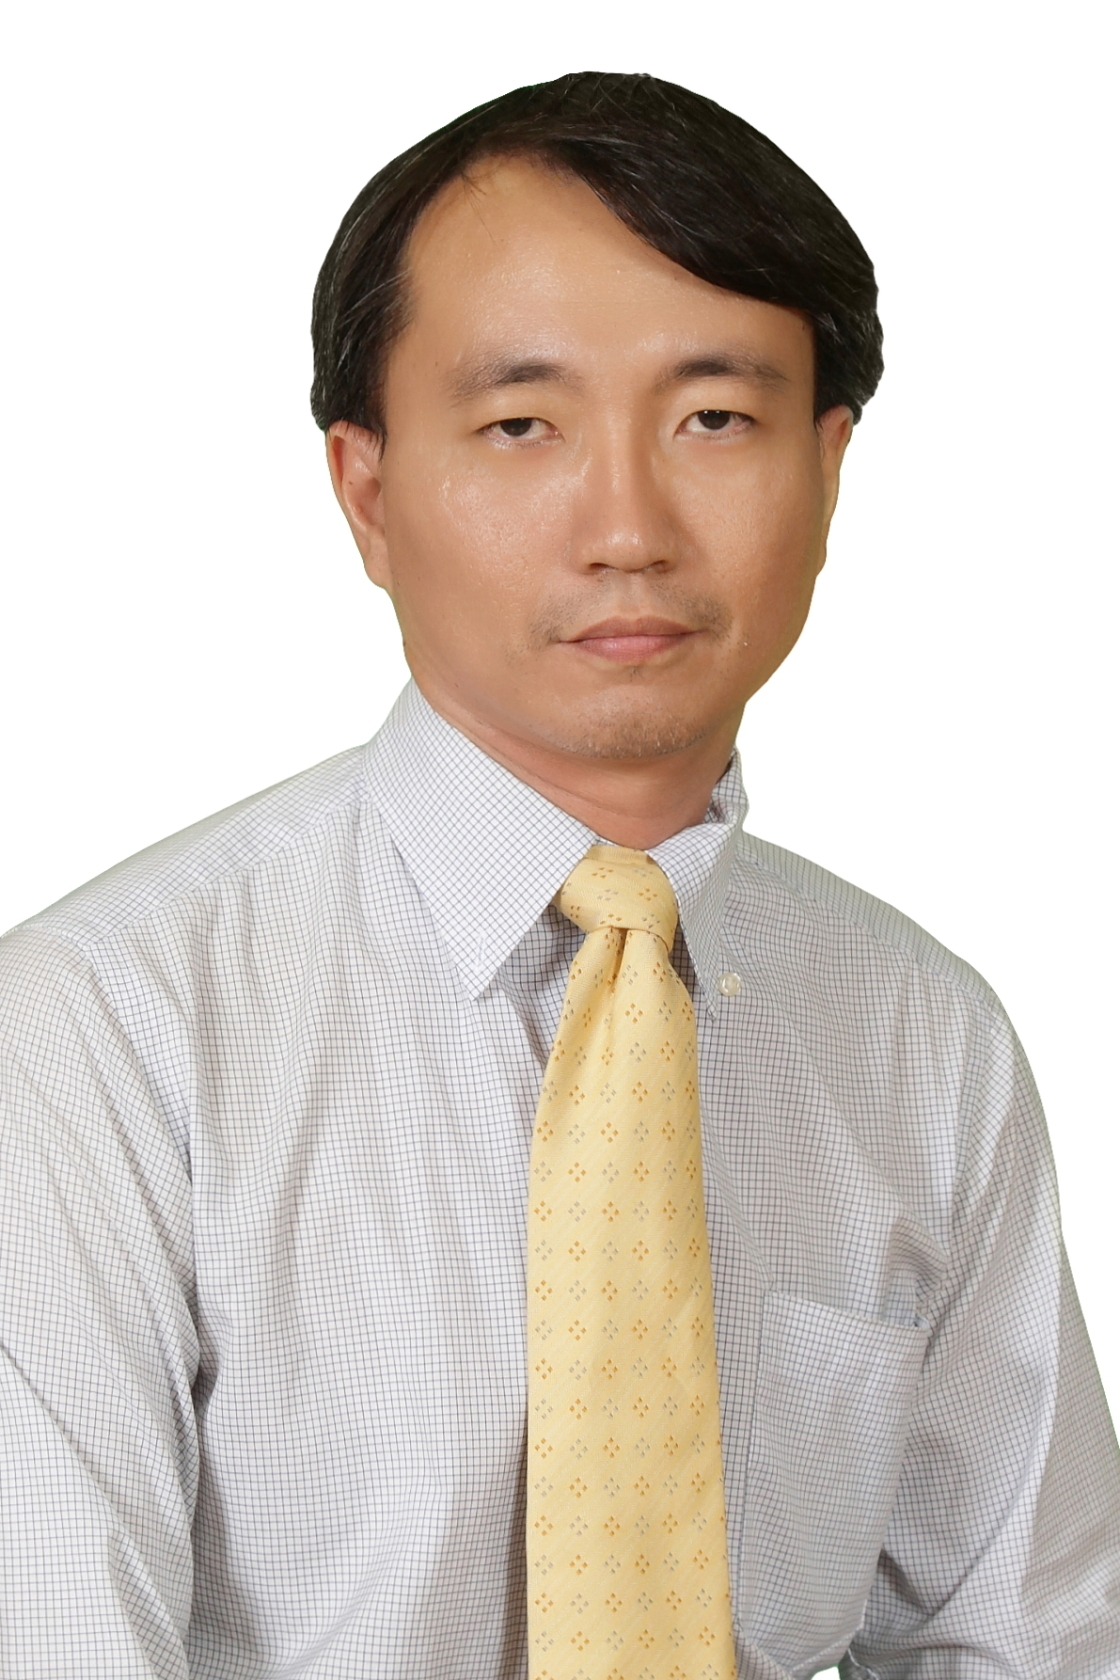 Mr Tan Chun Chiah.JPG